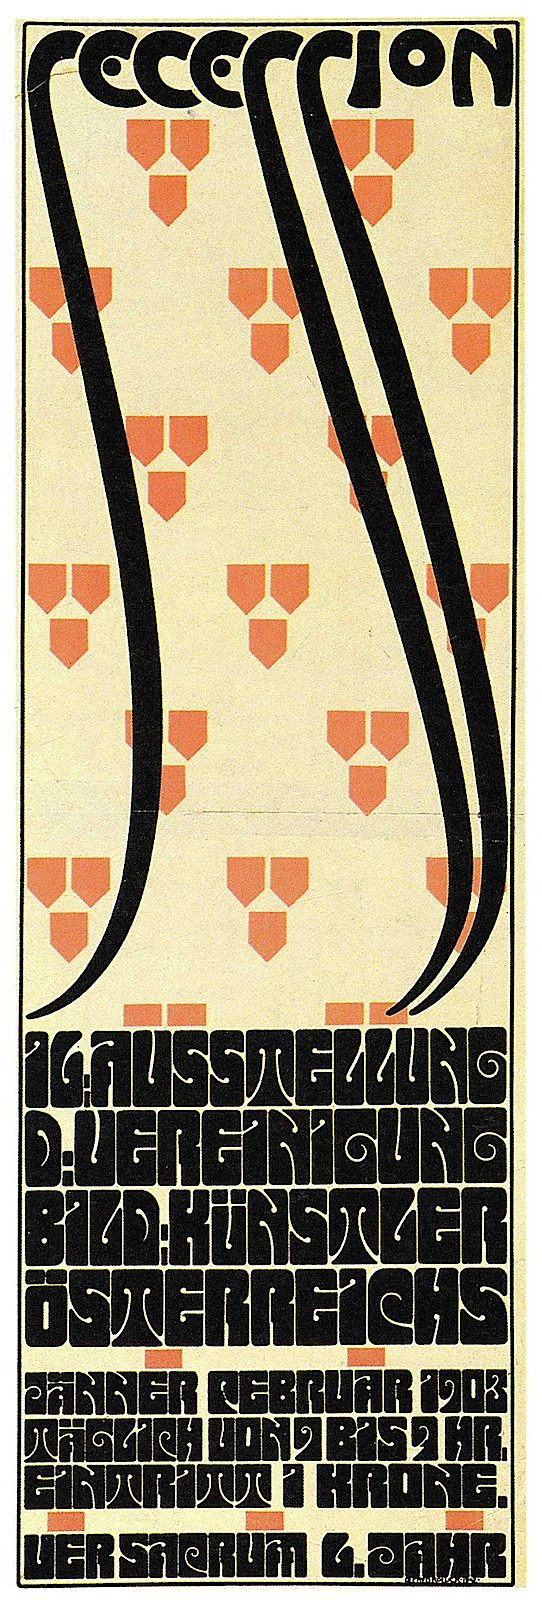 Alfred Roller 1903 secession poster in color